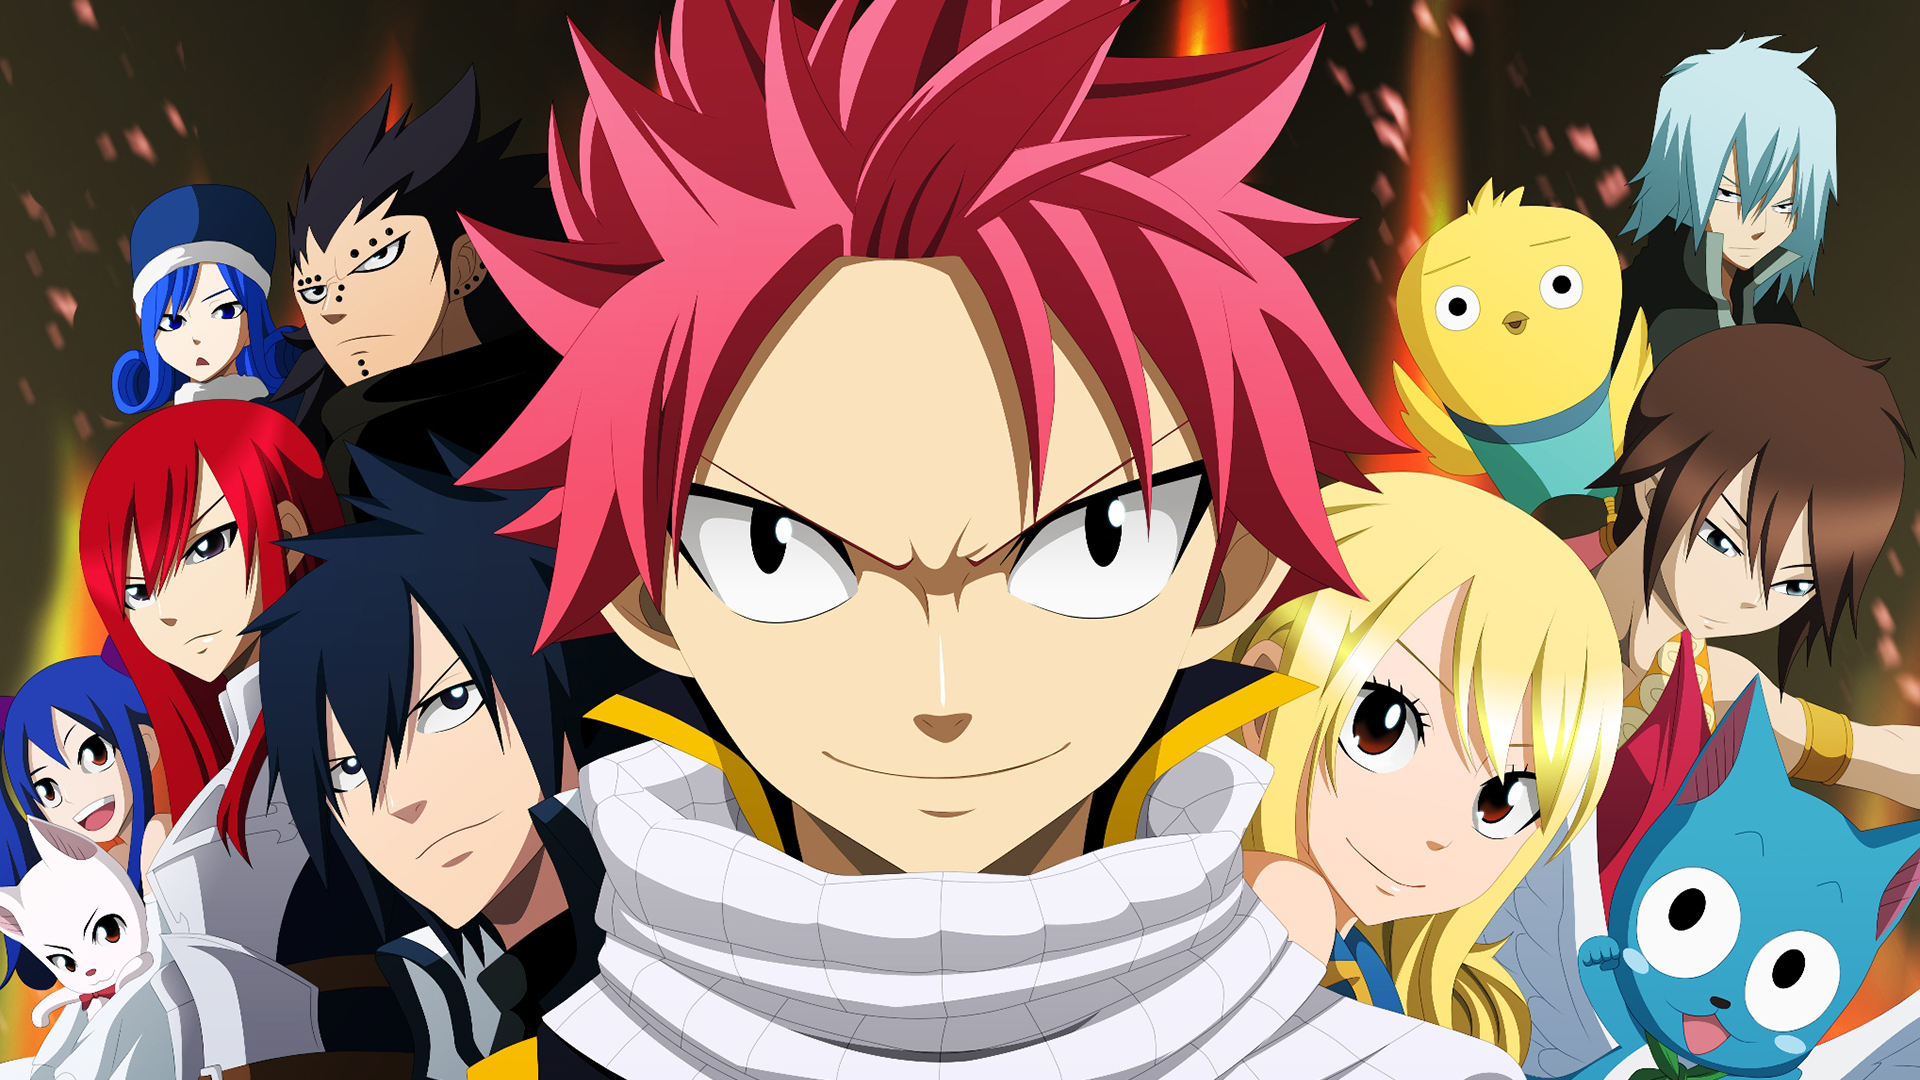 Fairy Tail Fond D Ecran Hd Arriere Plan 1920x1080 Id